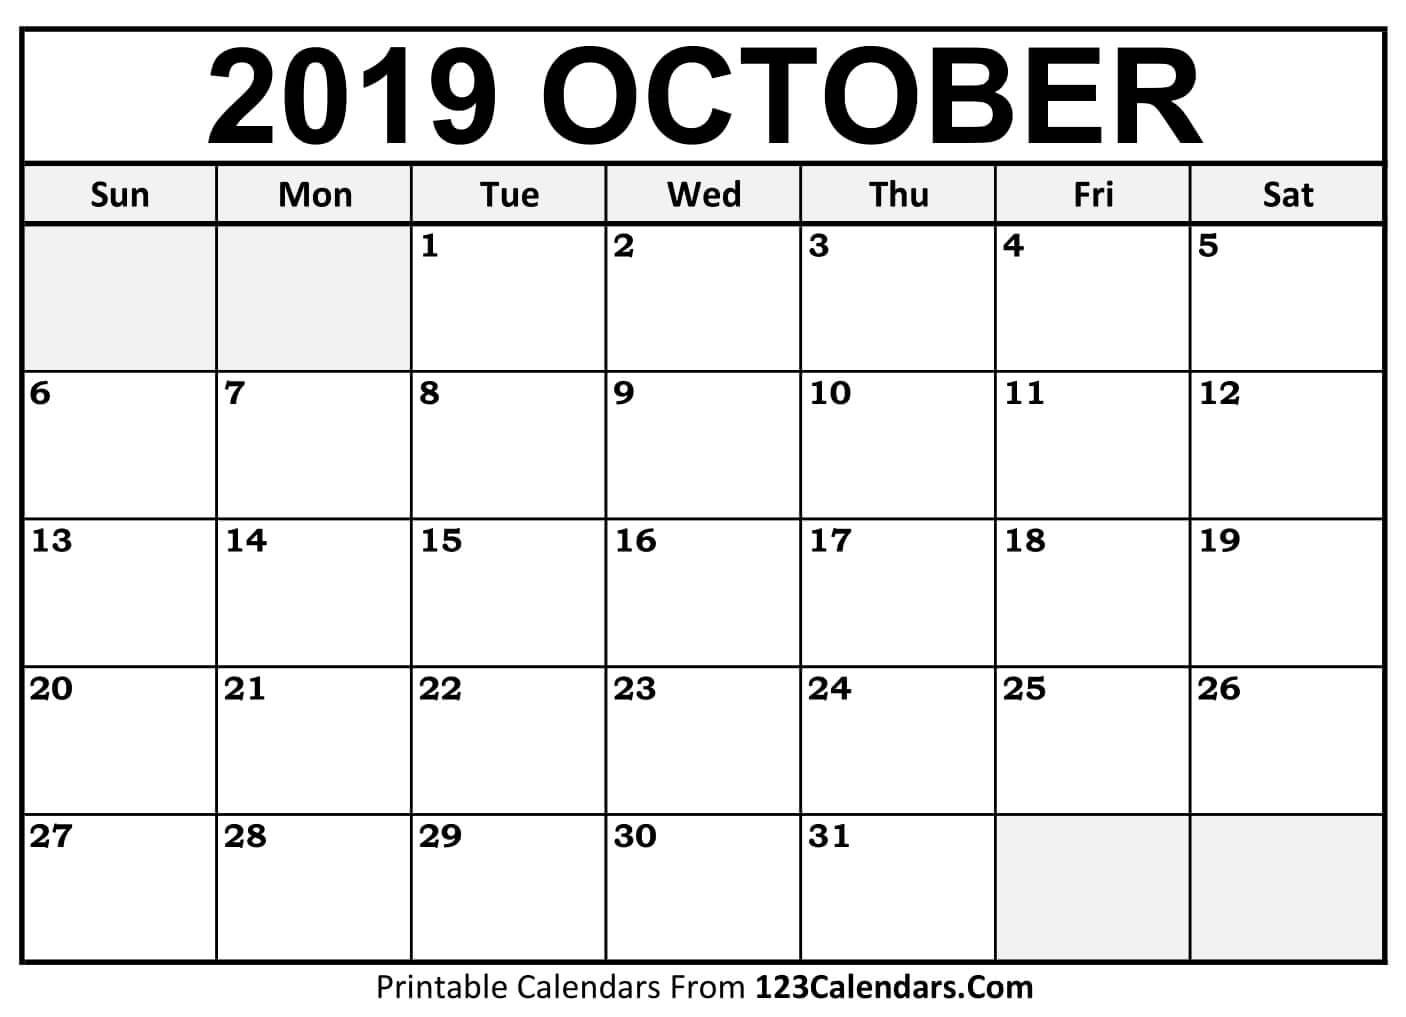 Printable October 2019 Calendar Templates - 123Calendars Calendar 2019 October